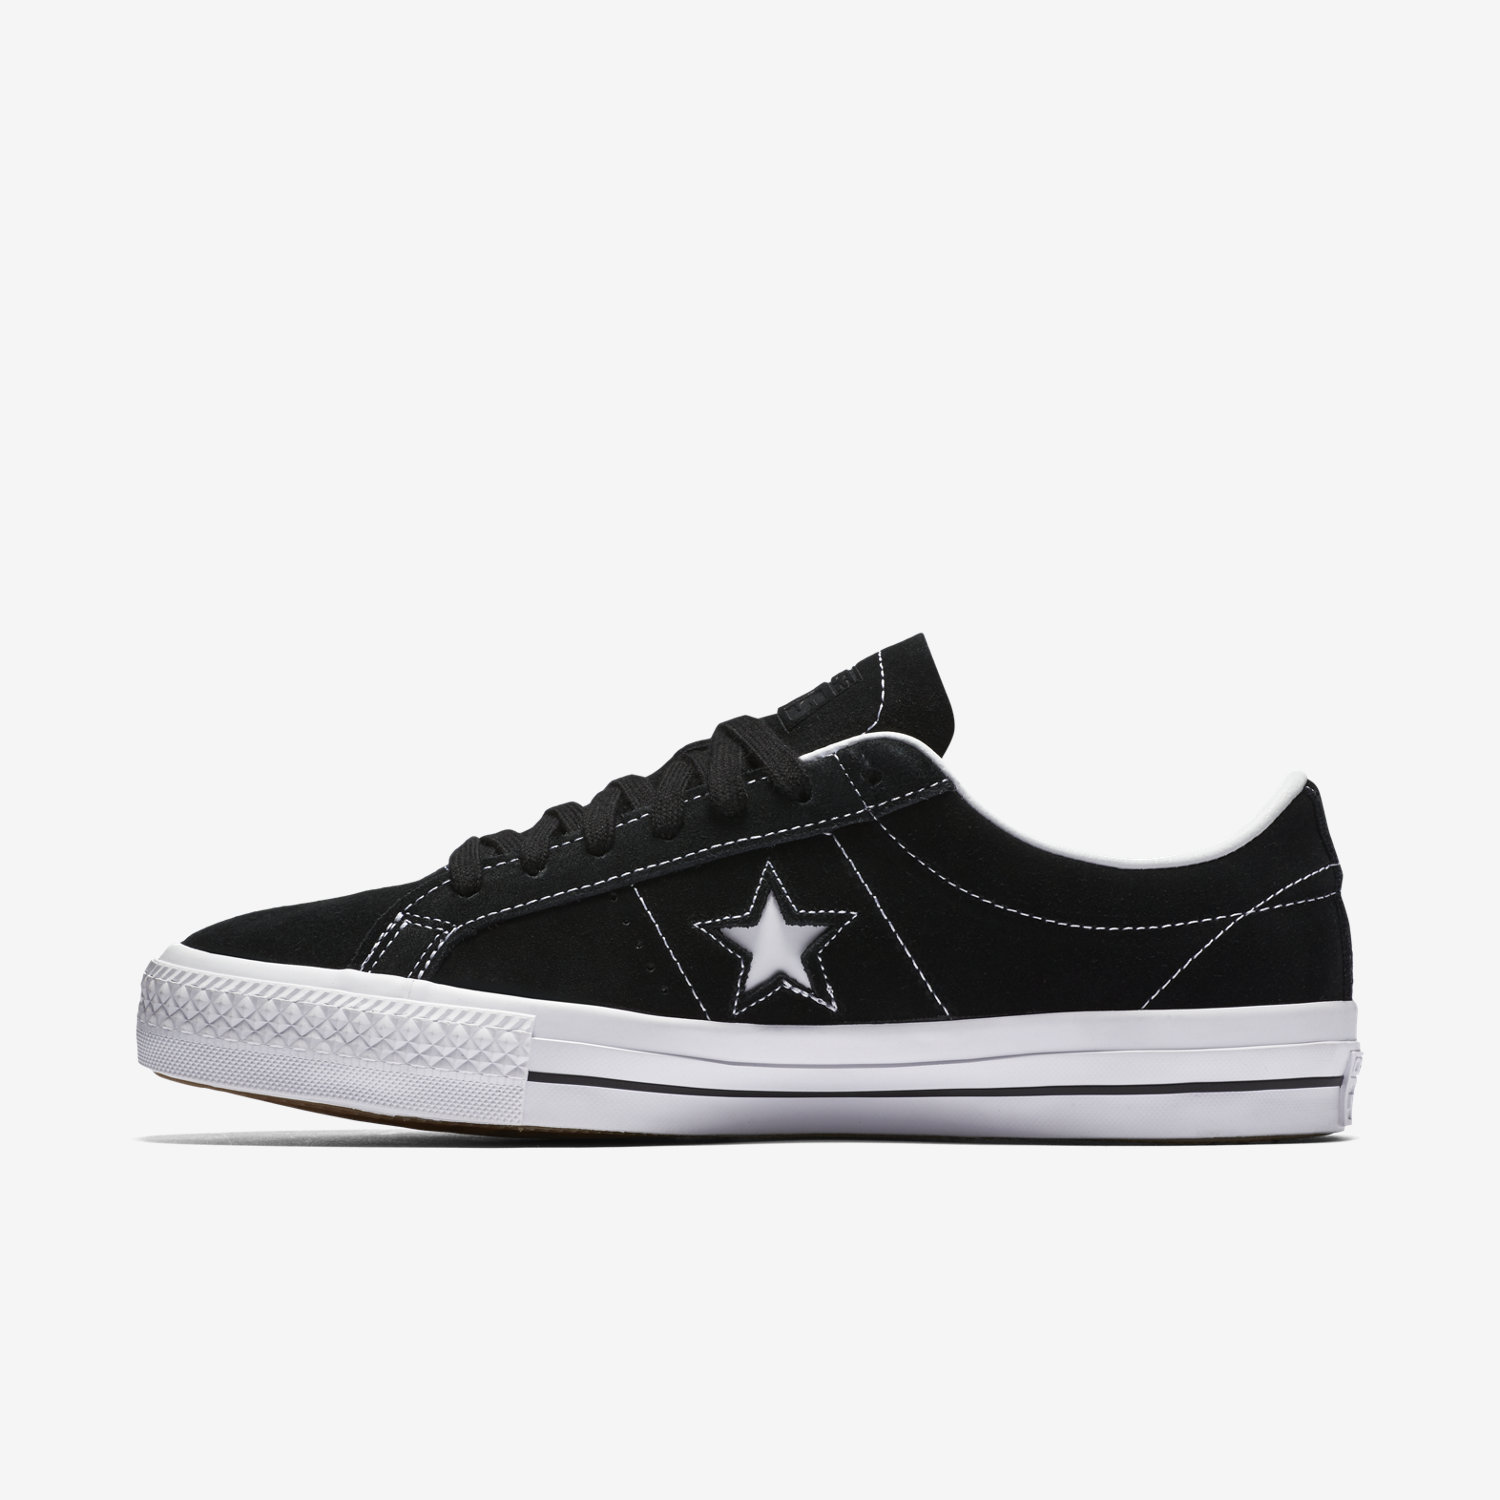 shoes hi star buy black chuck dealers p saleconverse nighttime brownconverse where quilted sale saleauthorized quilt low uk navy all to trainers white converse taylor